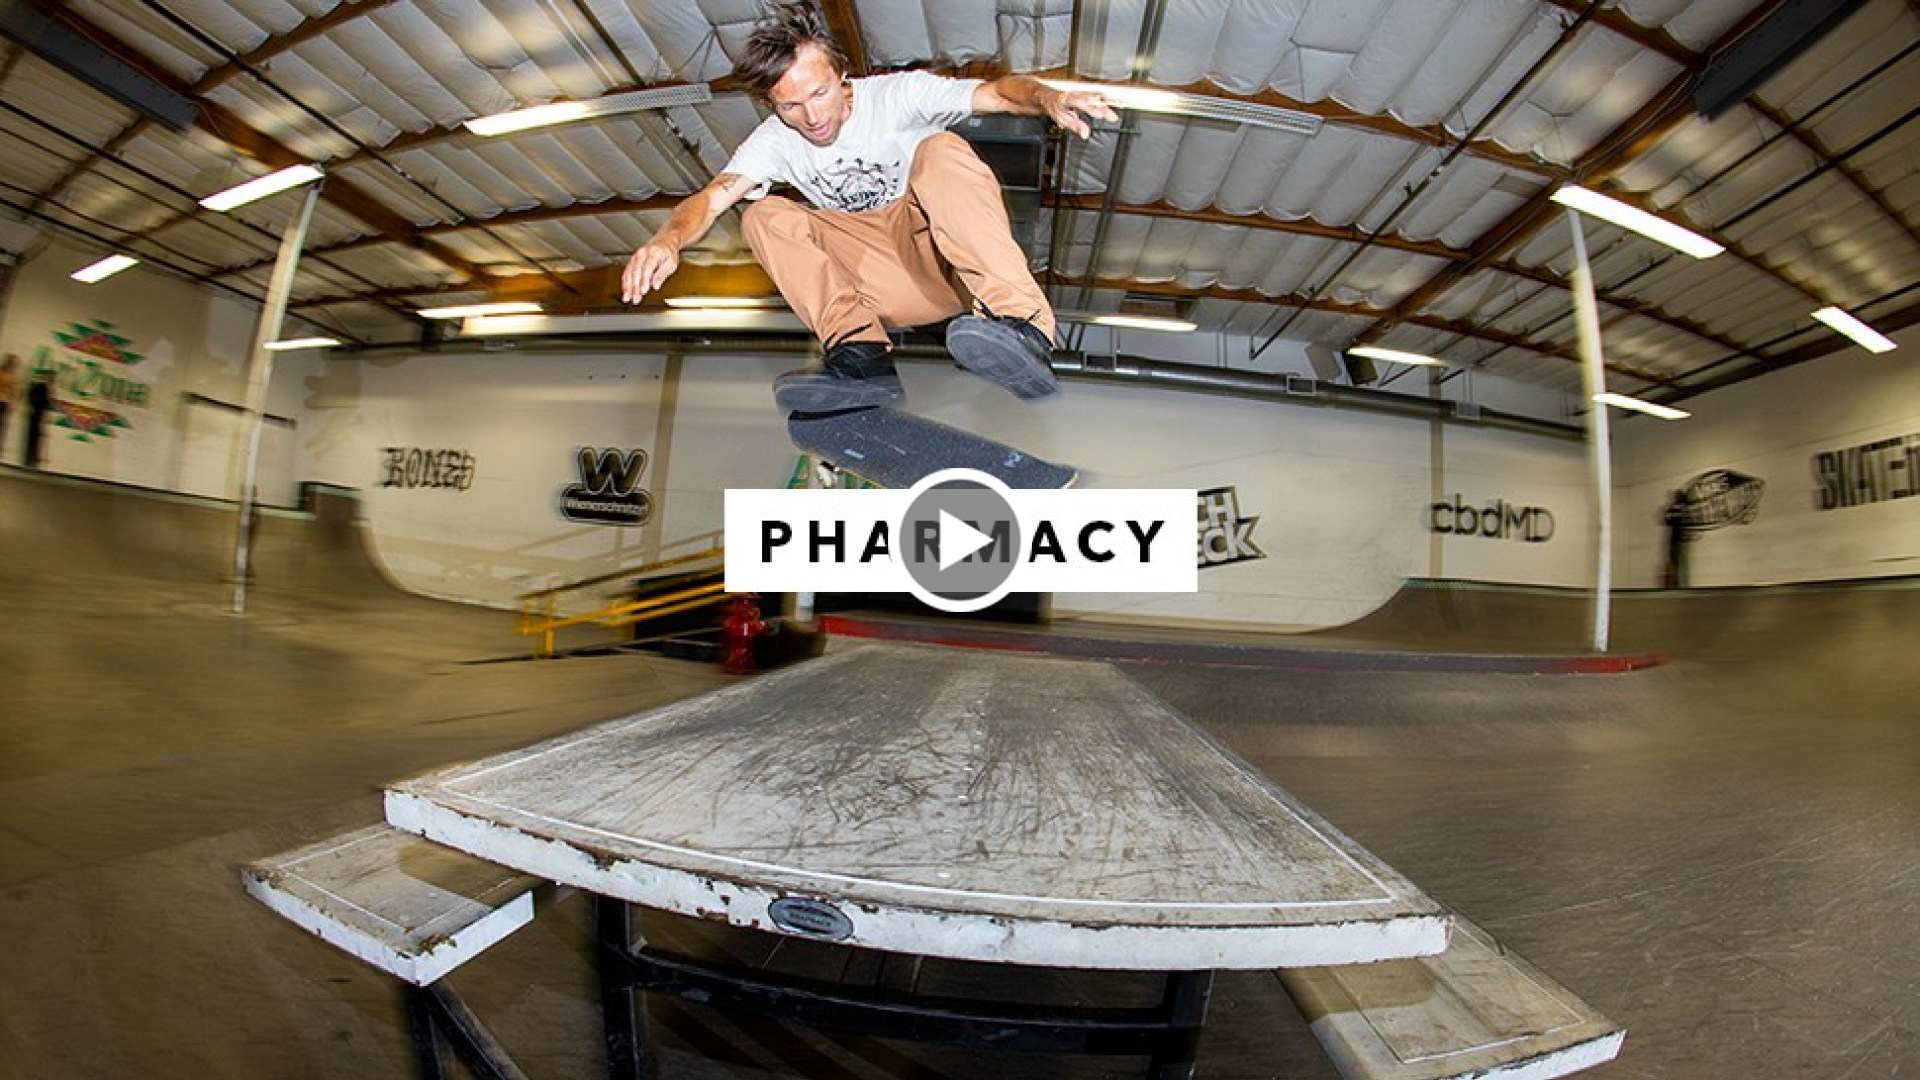 Pharmacy Boardshop Team Riders in the TransWorld SKATEboarding Park